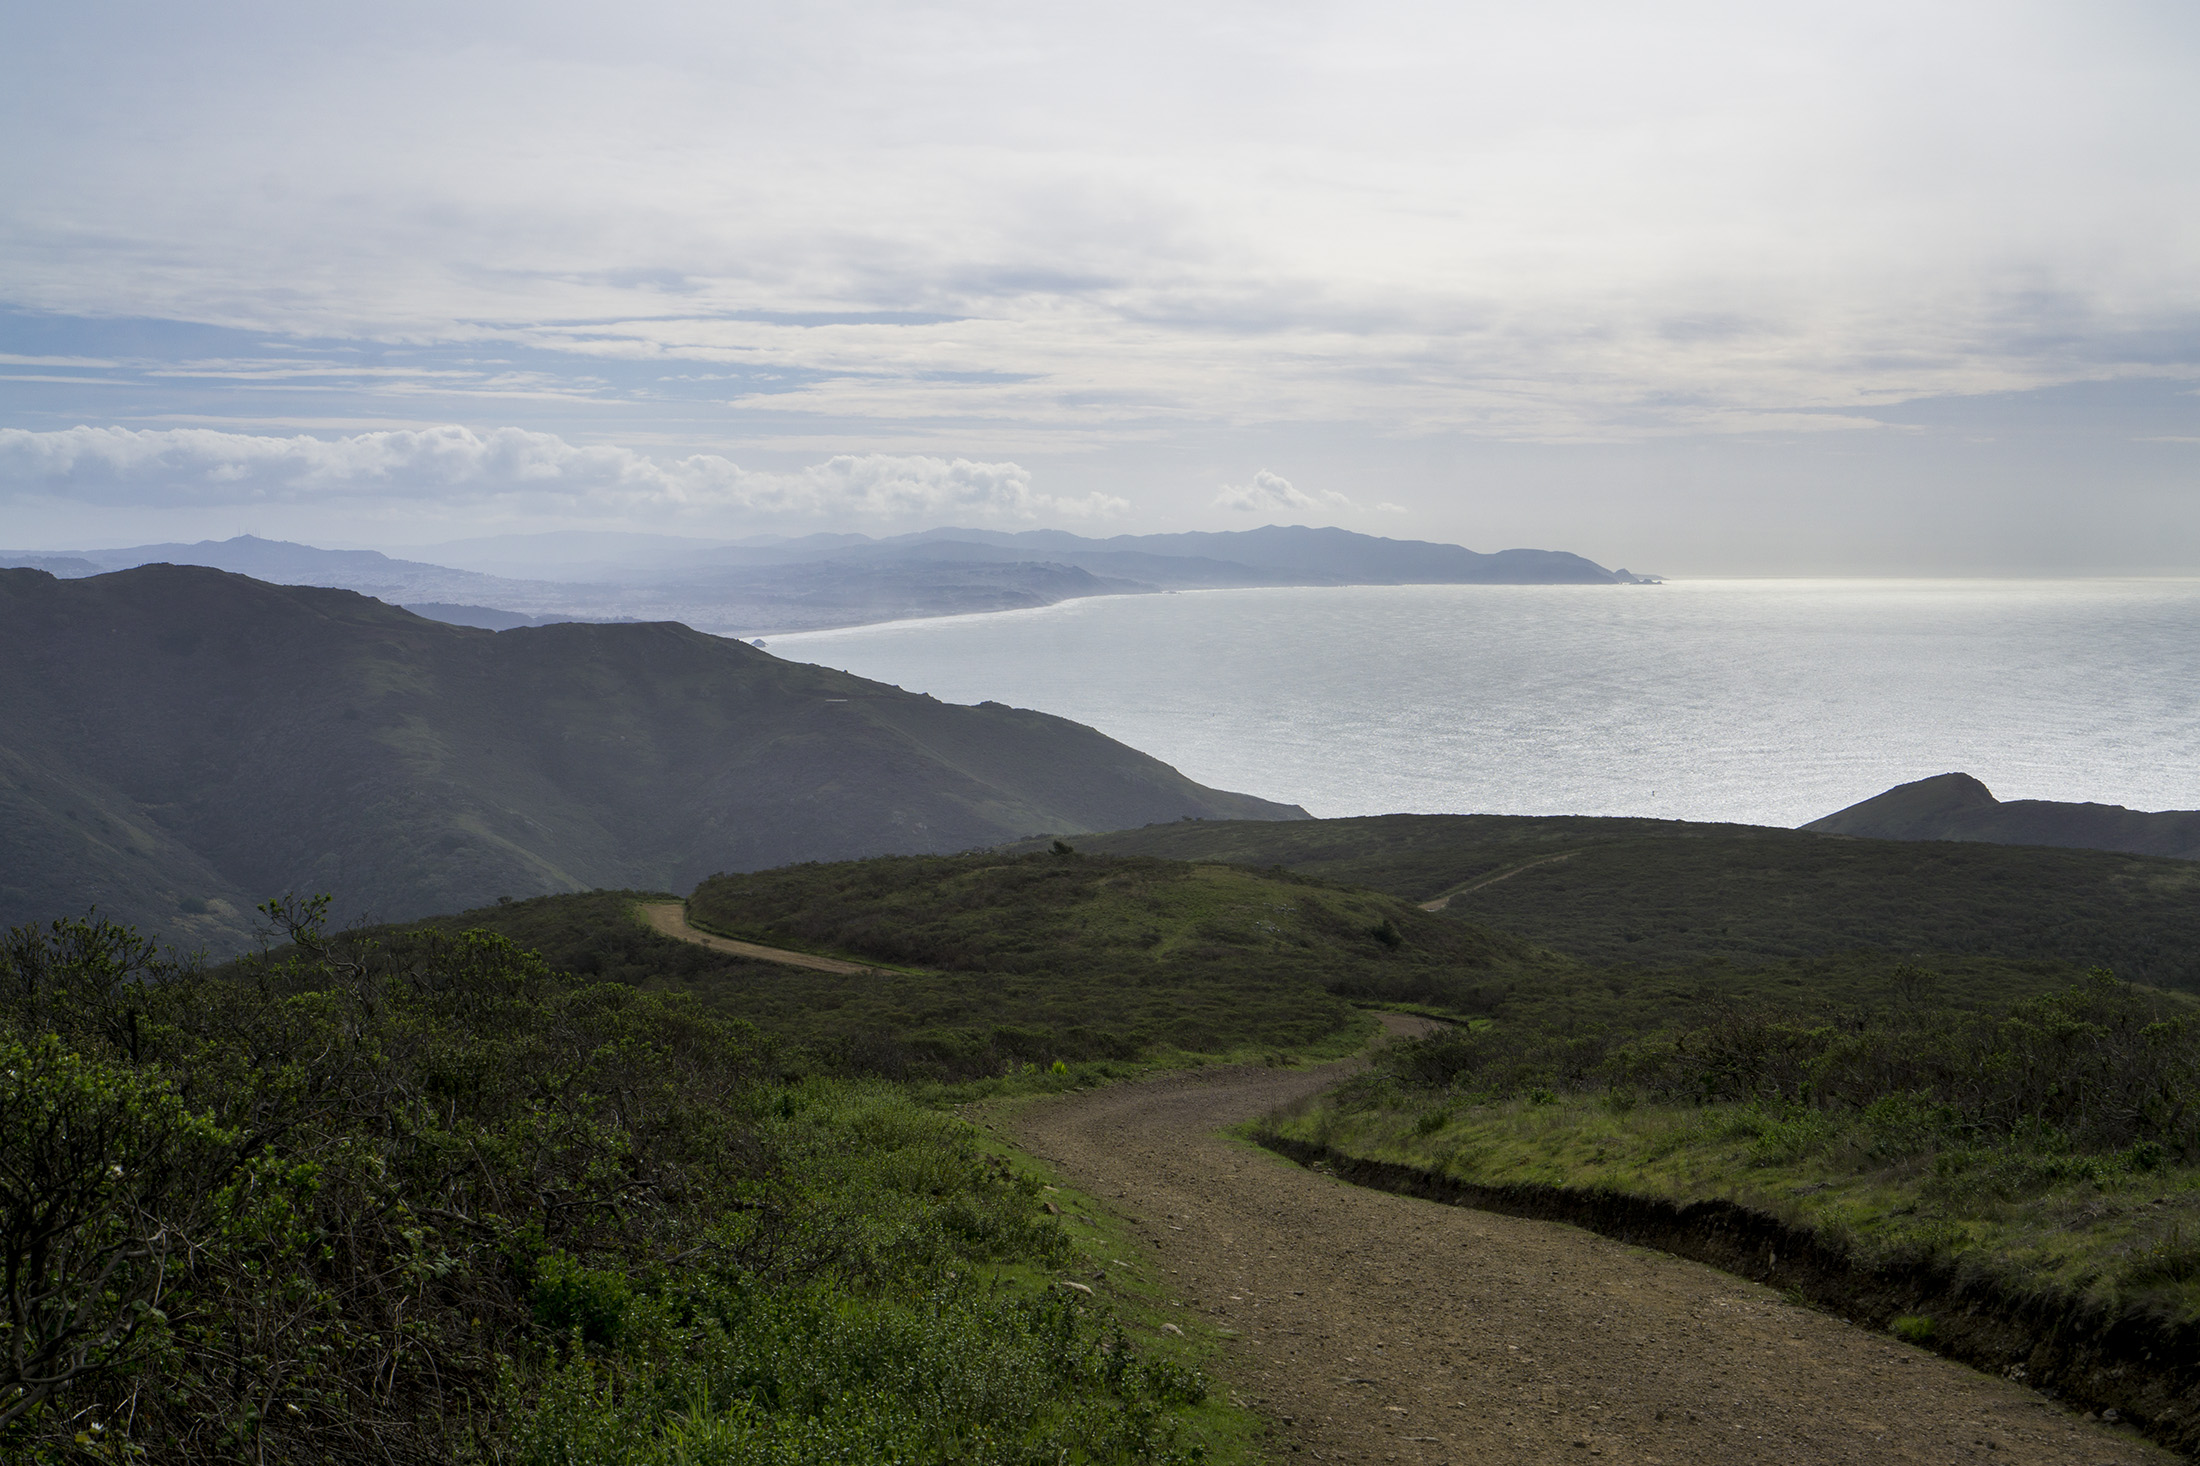 Pacific Ocean along the Tennessee Valley Trail, Marin Headlands, Golden Gate National Recreation Area / Darker than Green